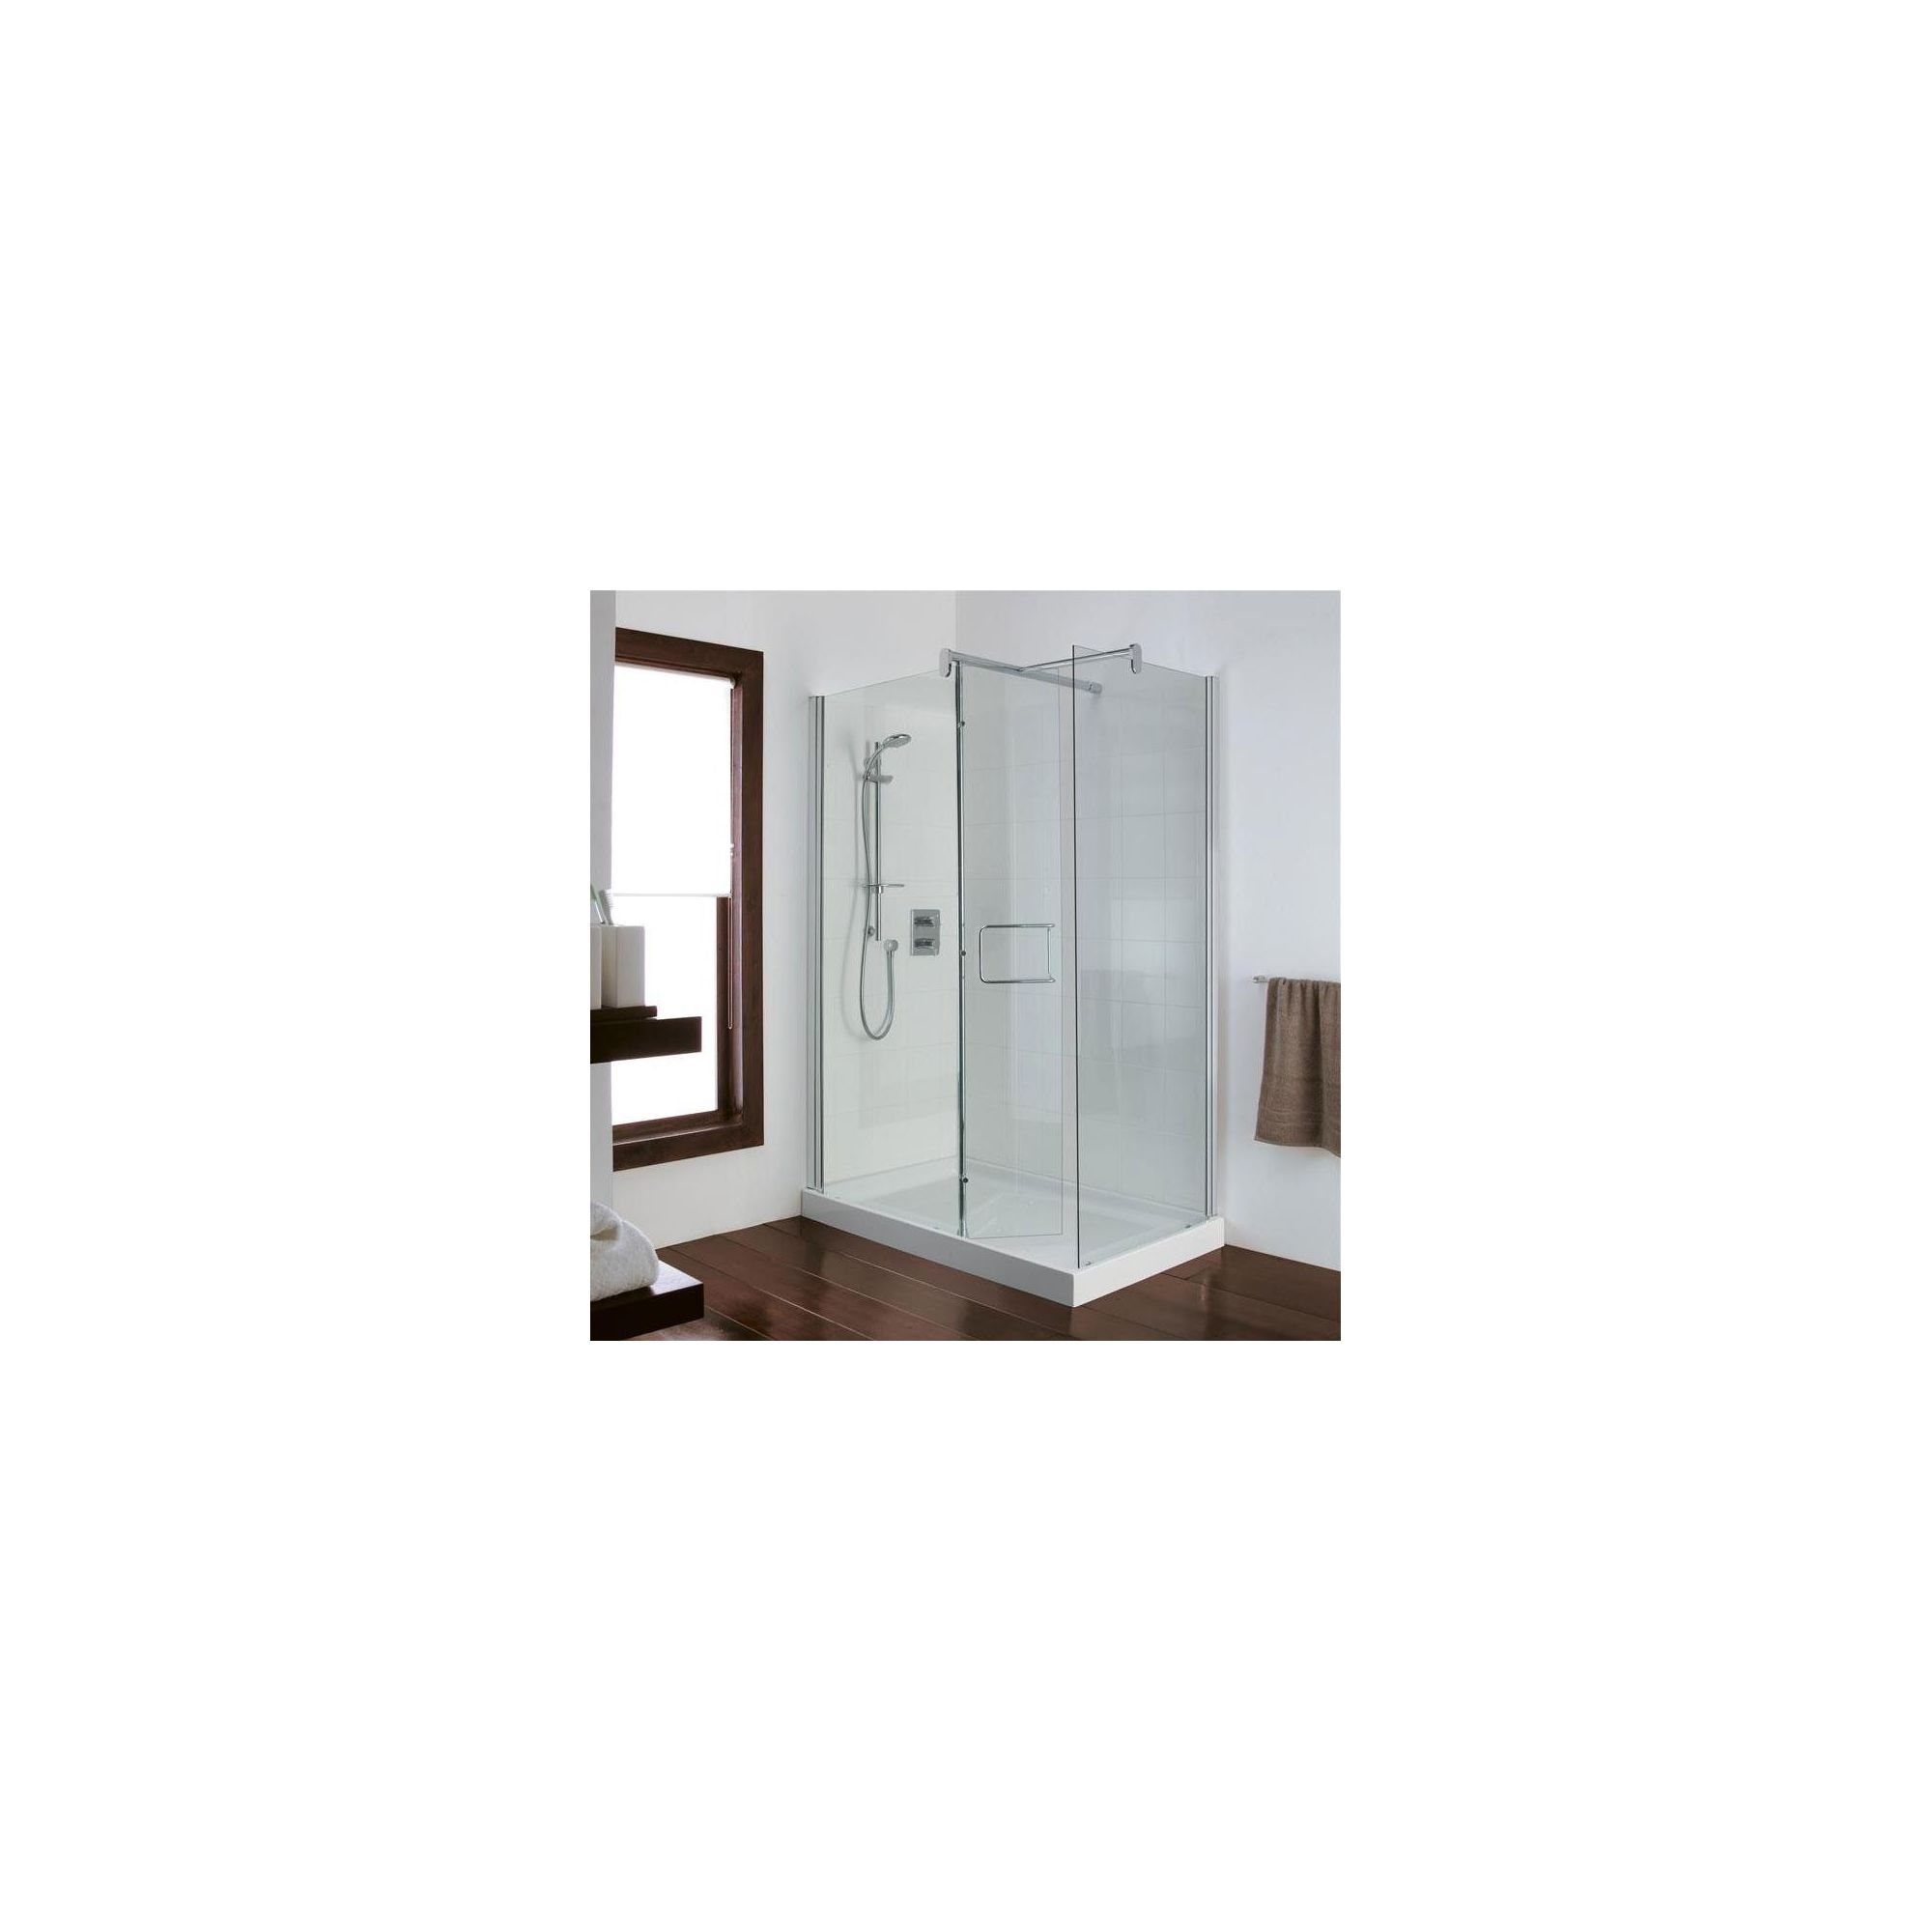 Ideal Standard Serenis Corner 90 Degree Shower Enclosure, excluding Fittings, 1400mm x 900mm, Low Profile Tray, Left Handed at Tescos Direct